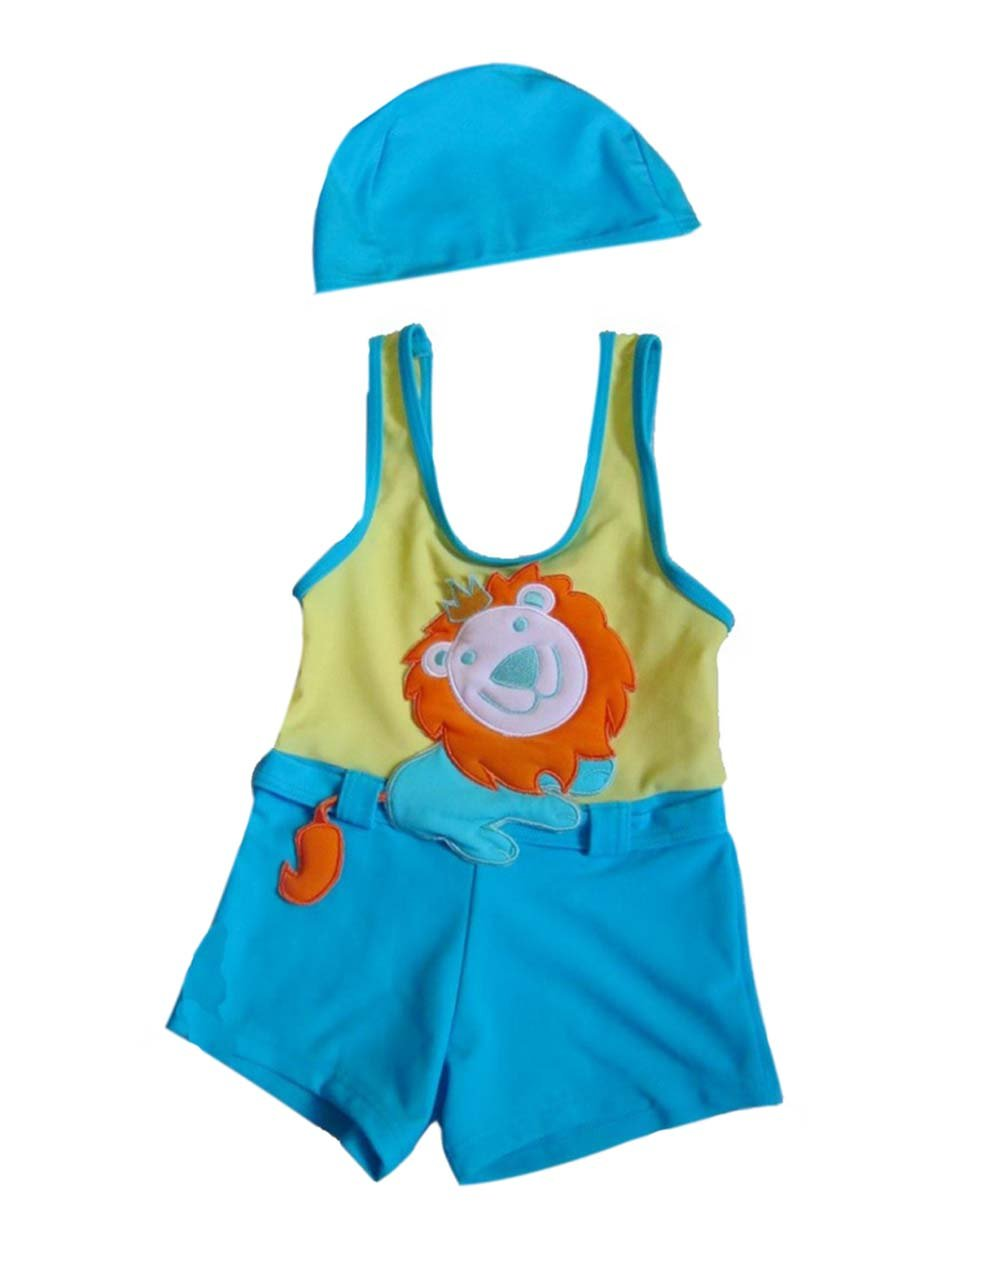 Cute Lion Boys Body Suits 2 Pcs Swimsuits, 5T, 3-4 Years Old Boy PANDA SUPERSTORE PS-SPO2420245011-EMILY00857